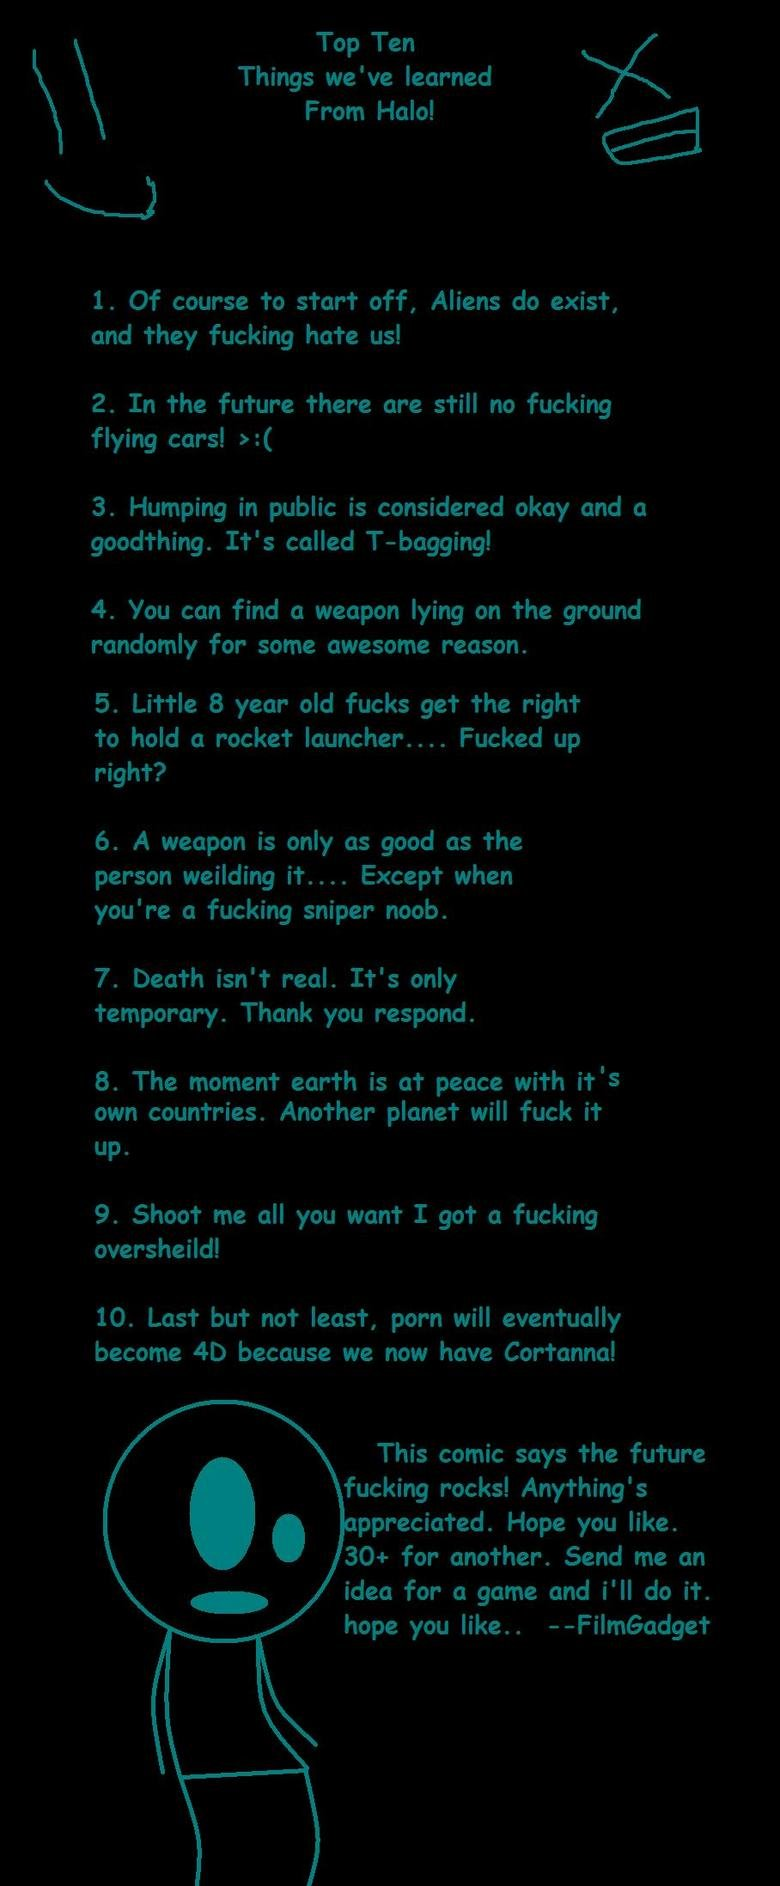 Top ten things we've learned from Halo!. I was playing some video games and thought I'd make one. This is all original content. Complete legit. So read it and g